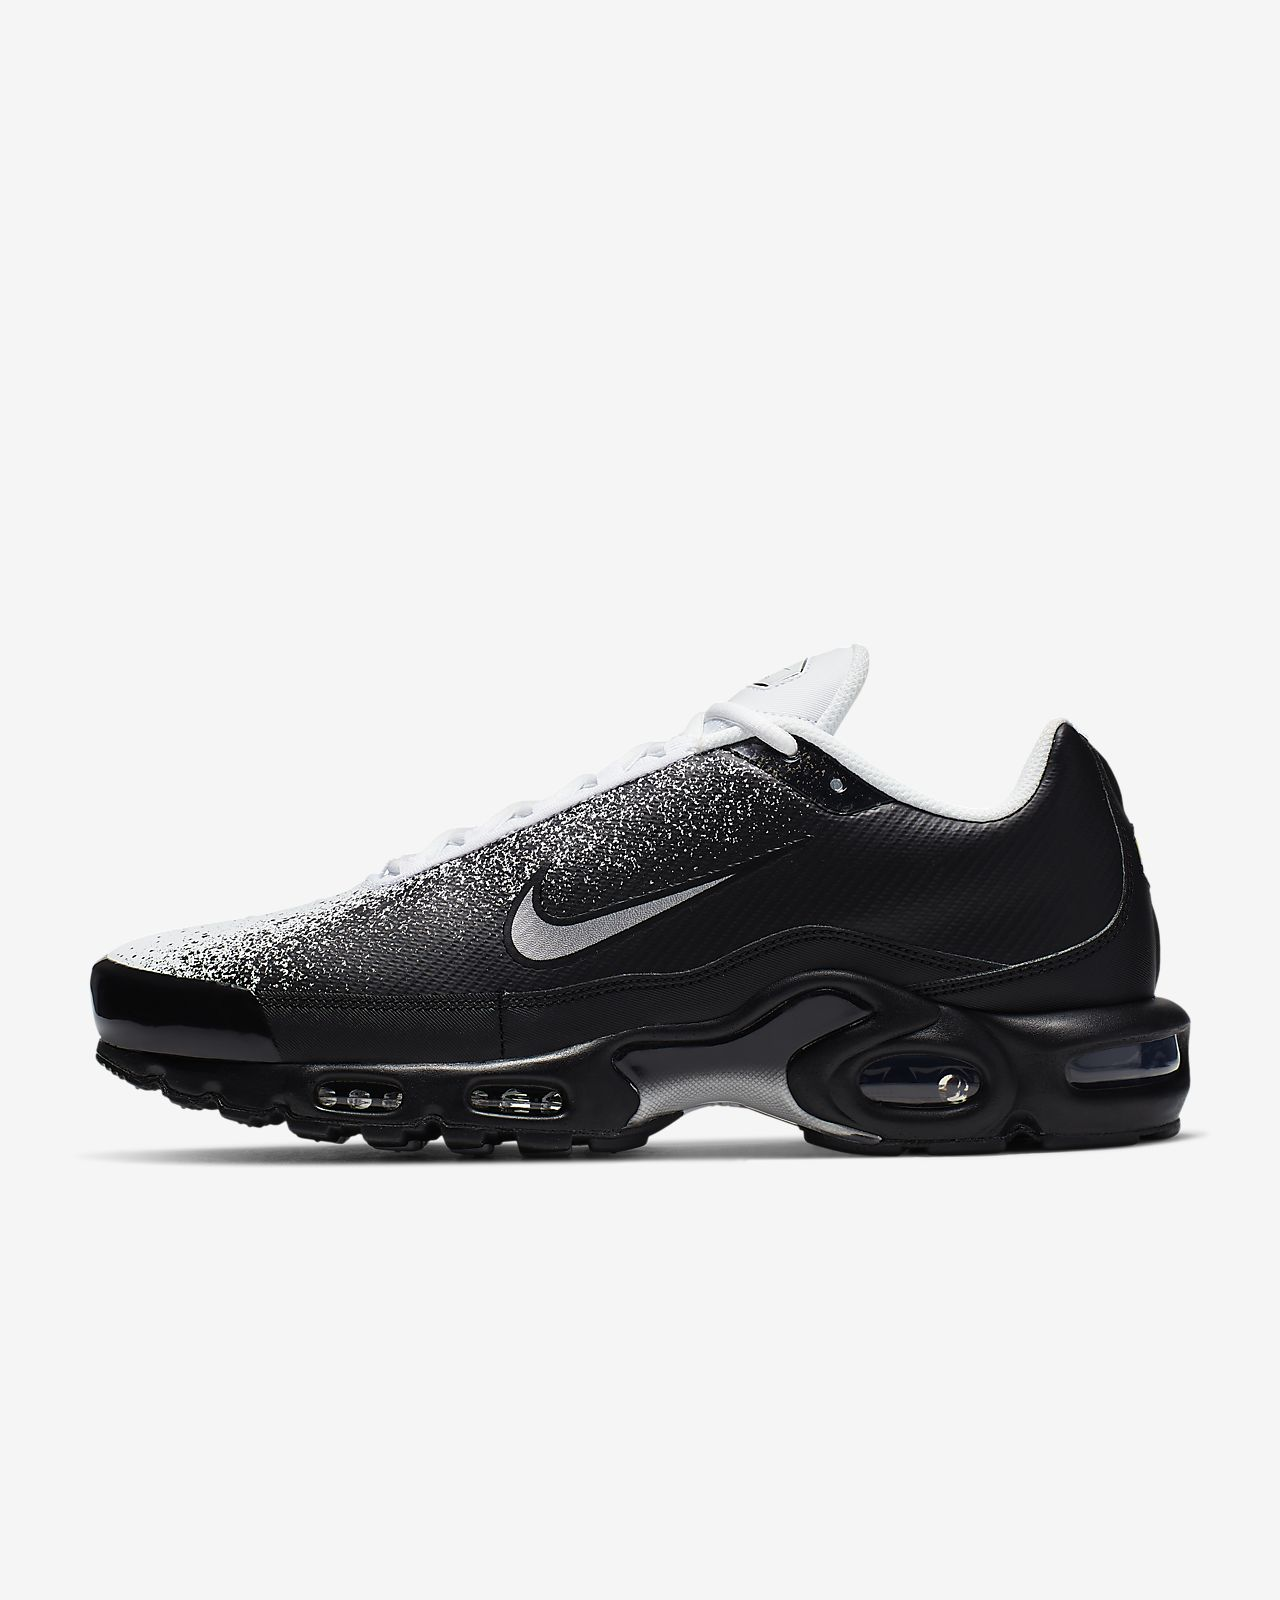 02d71edc95b Nike Air Max Plus Tn SE Men's Shoe